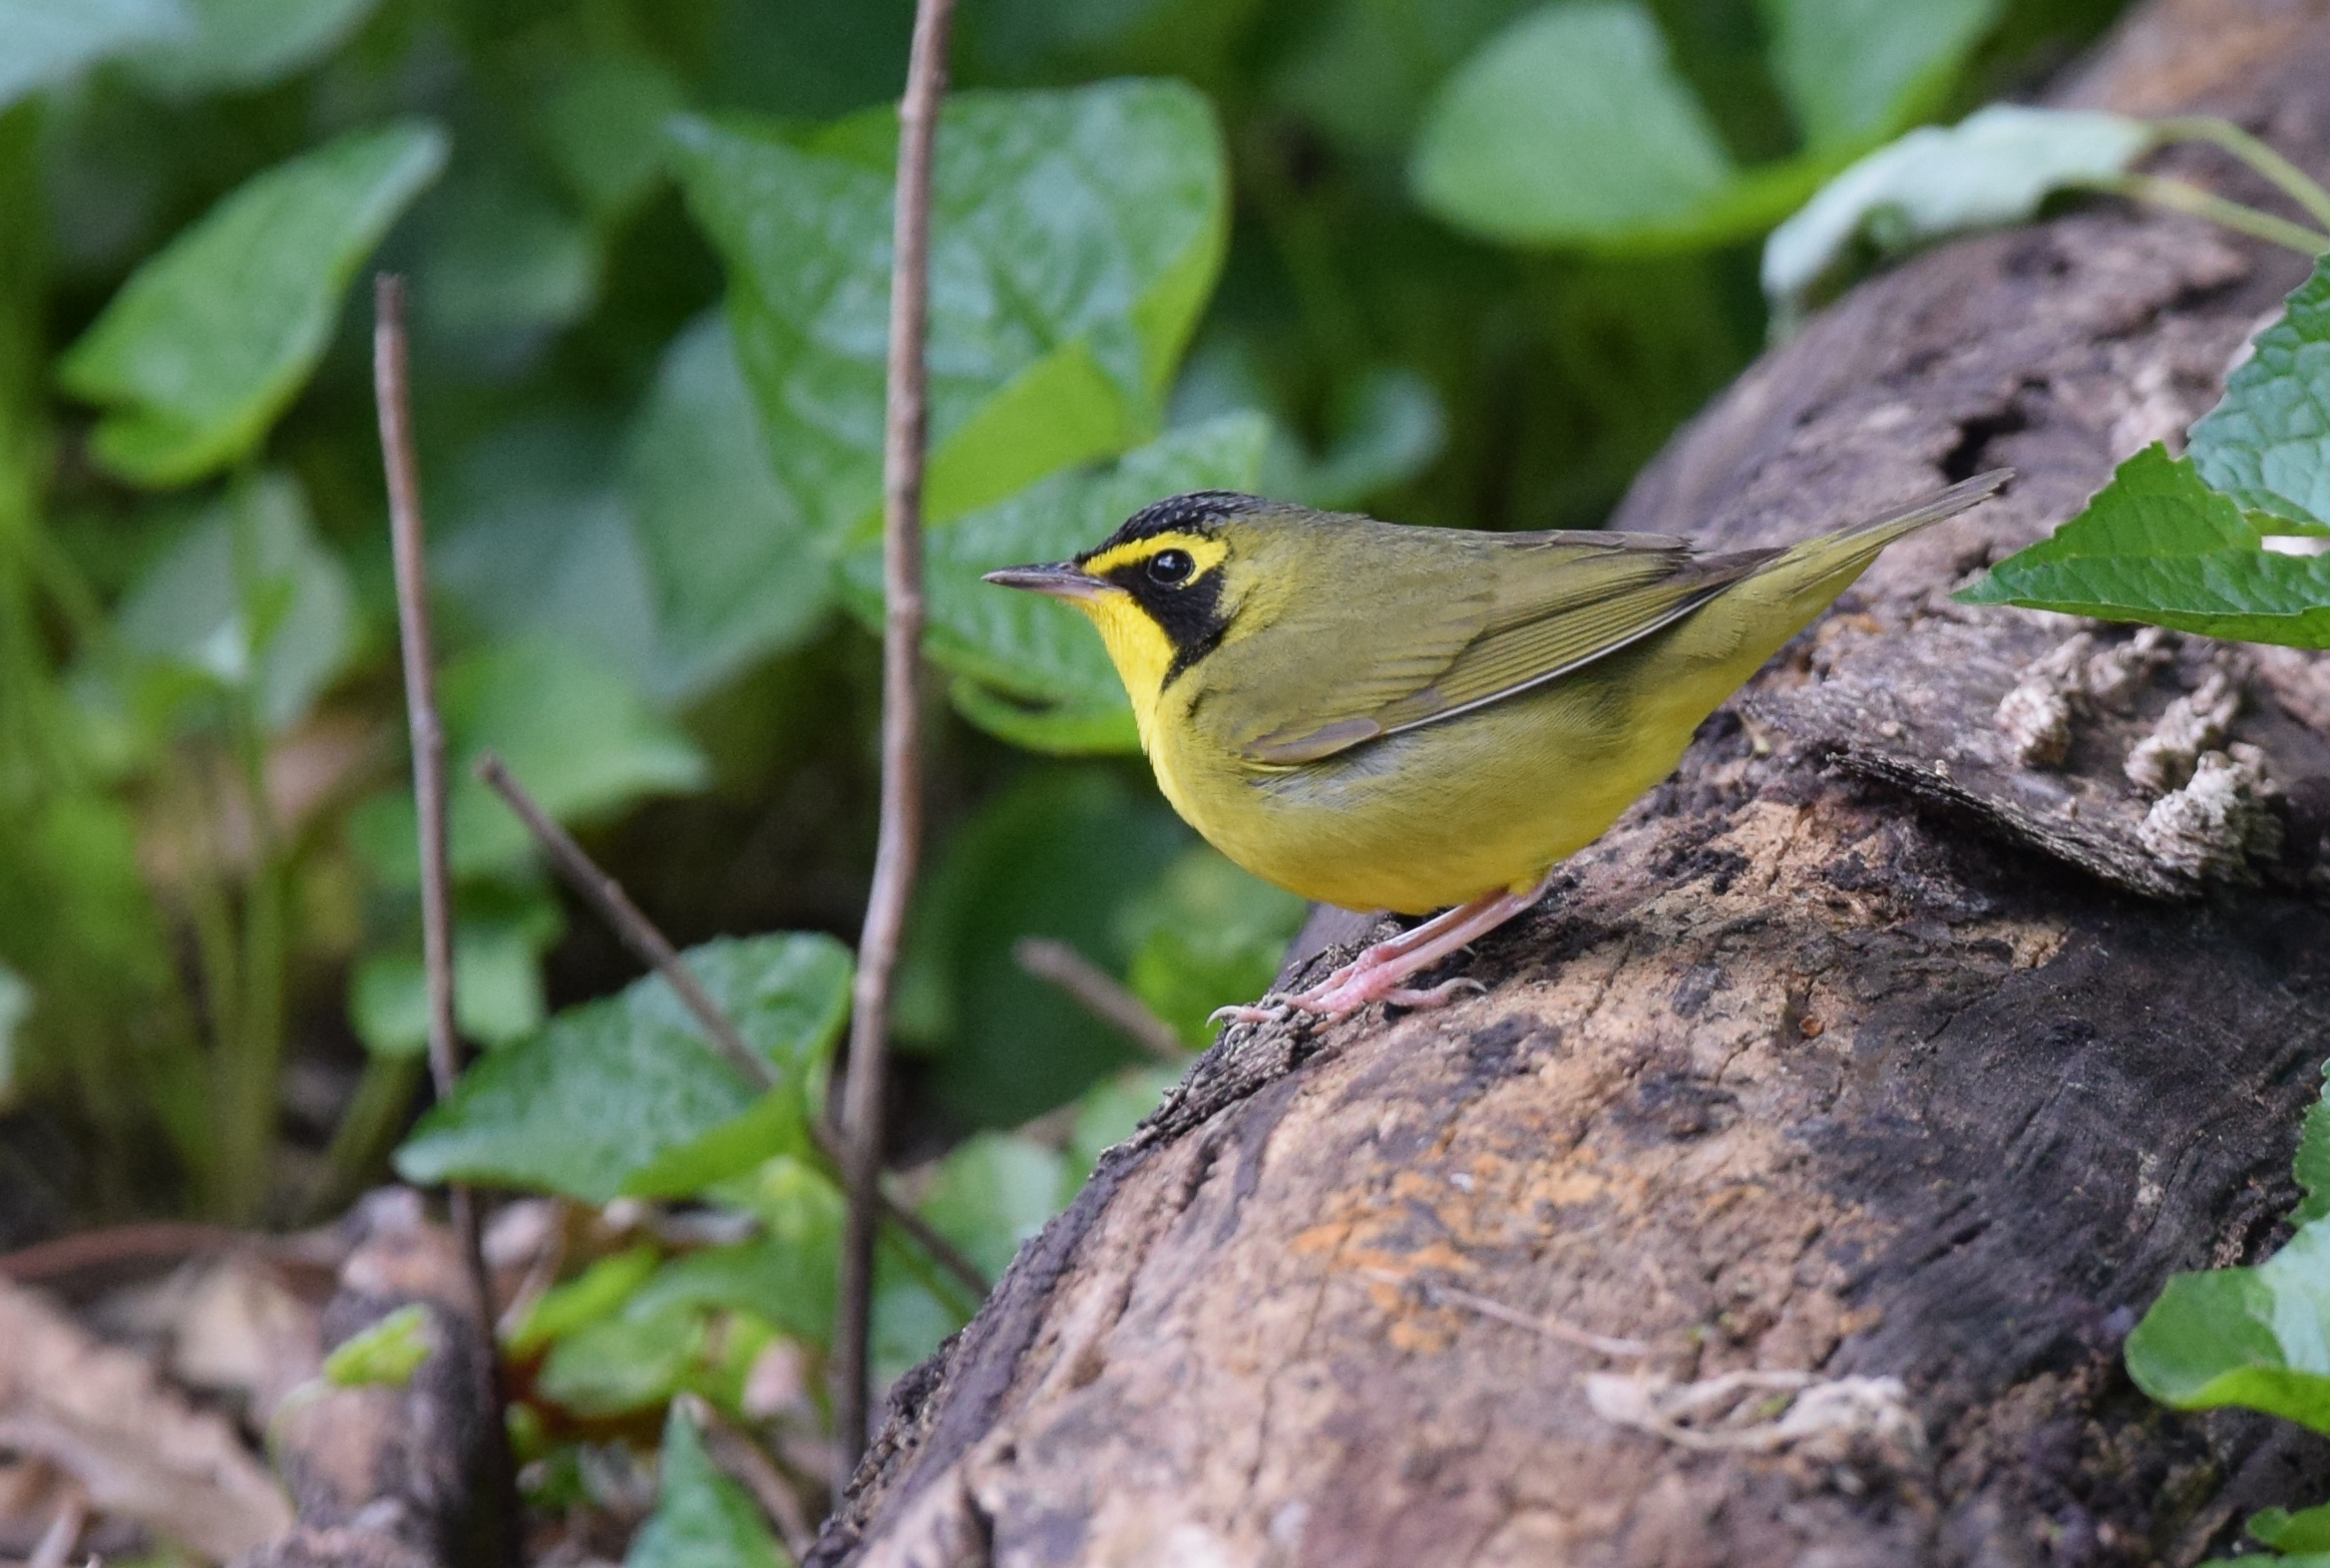 """- Kentucky Warbler (Geothlypis formosa)Kentucky Warblers live in deciduous undergrowth near running water. Their diet consists of insects and berries. They weigh 0.4-0.5 oz. and have a wingspan of 7.1-8.7 in. Kentucky Warblers sing """"tur-dee tur-dee tur-dee tur-dee."""" They are protected on the US Migratory Bird list.Photo Credits: Andy Reago & Chrissy McClarren"""